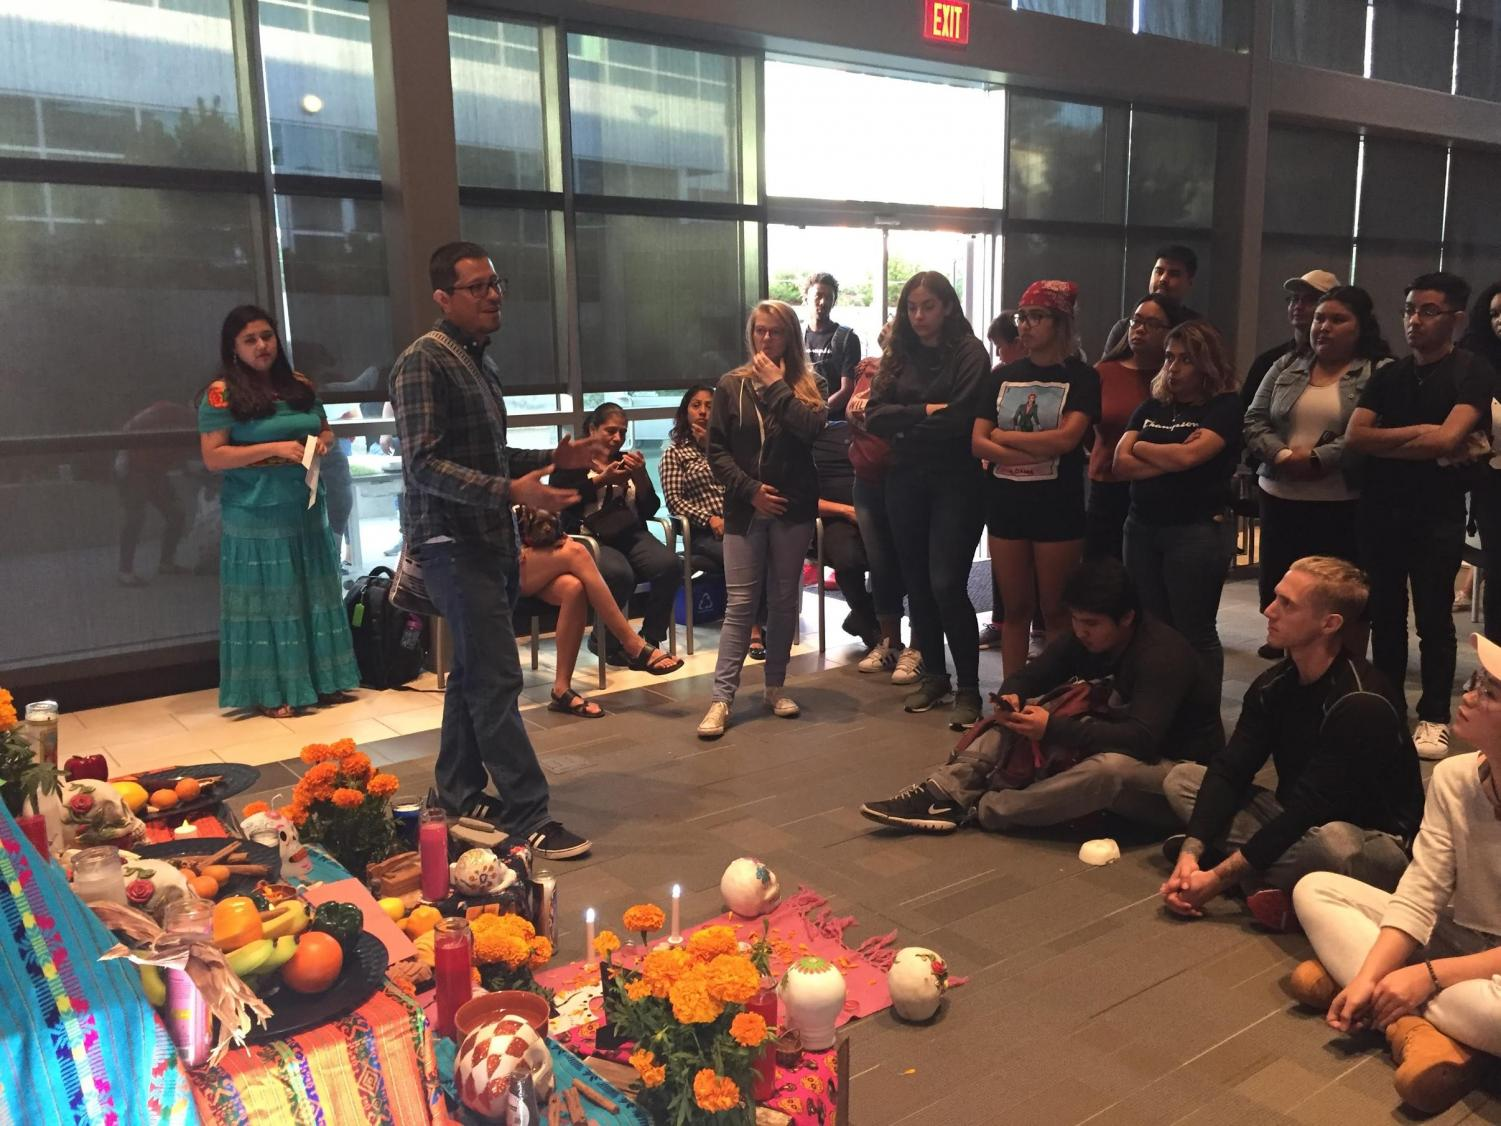 La Raza studies professor Augustin Palacios speaks to the crowd at the Dia de los Muertos event in Fireside Hall on Thursday.